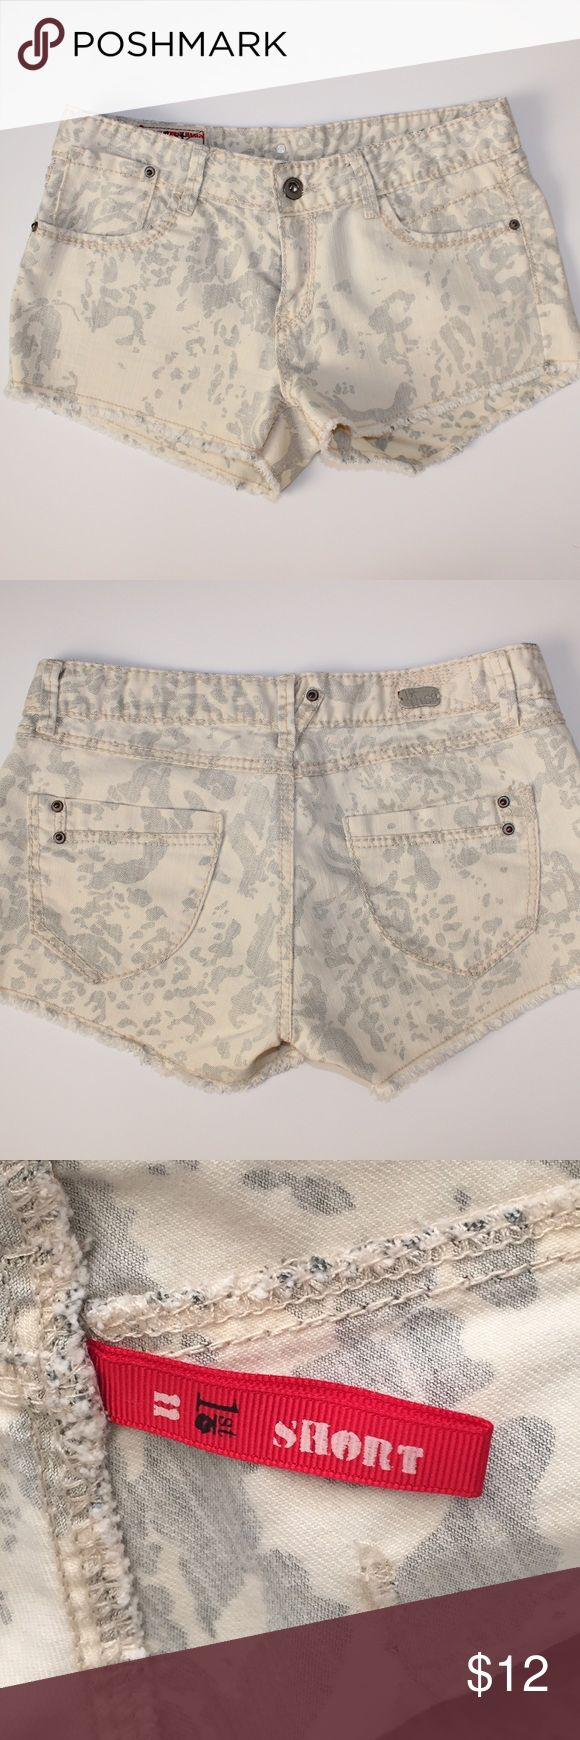 1st Kiss Cheetah Shorts SZ 11 Jrs In good pre-owned condition. Cream and gray cheetah print shorts. Size 11 Juniors. No trades, offers welcome! 1st Kiss Shorts Jean Shorts